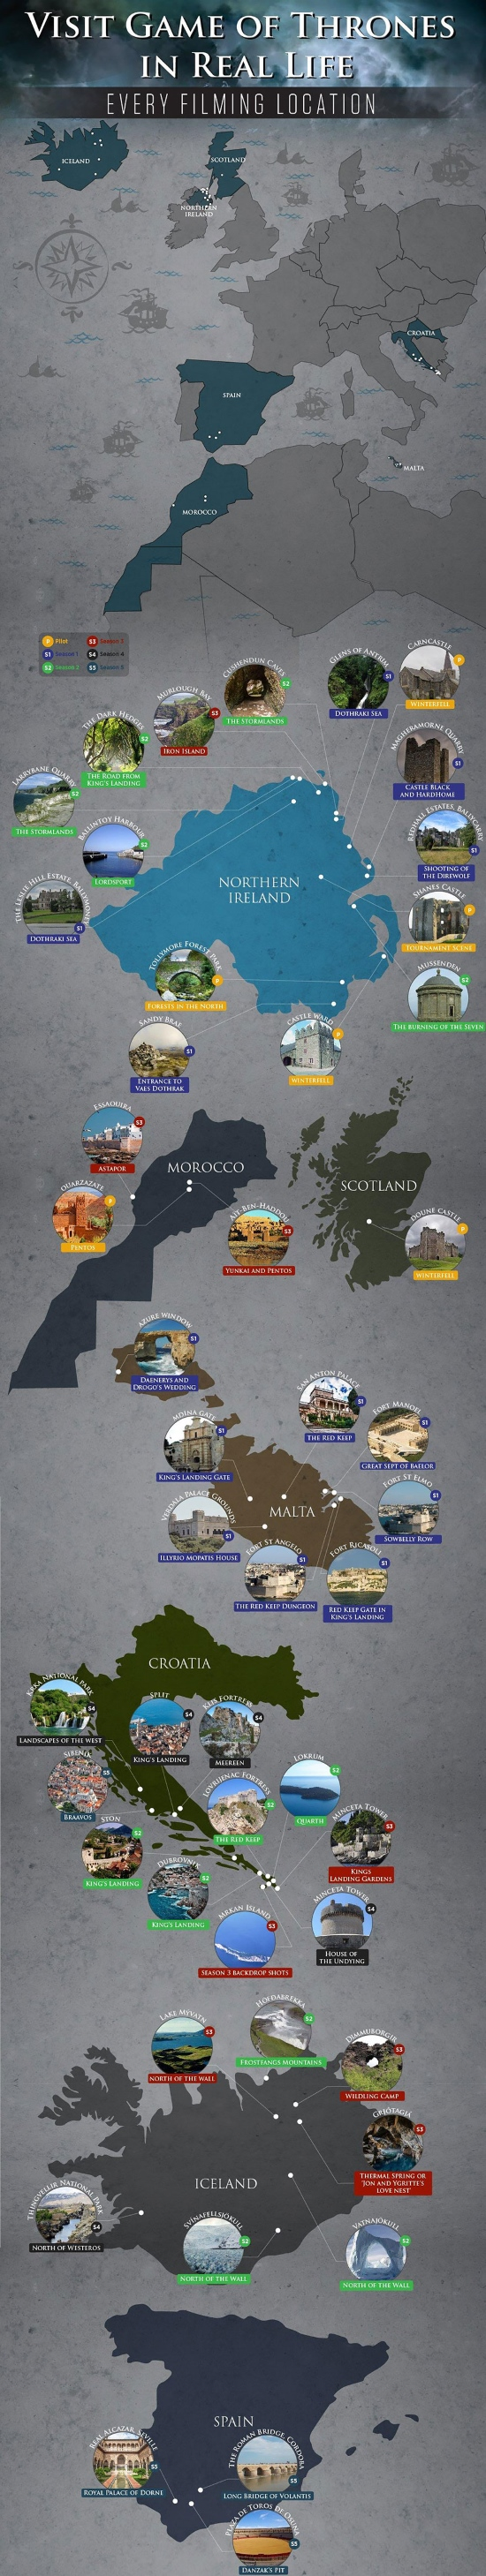 game-of-thrones-real-life-locations